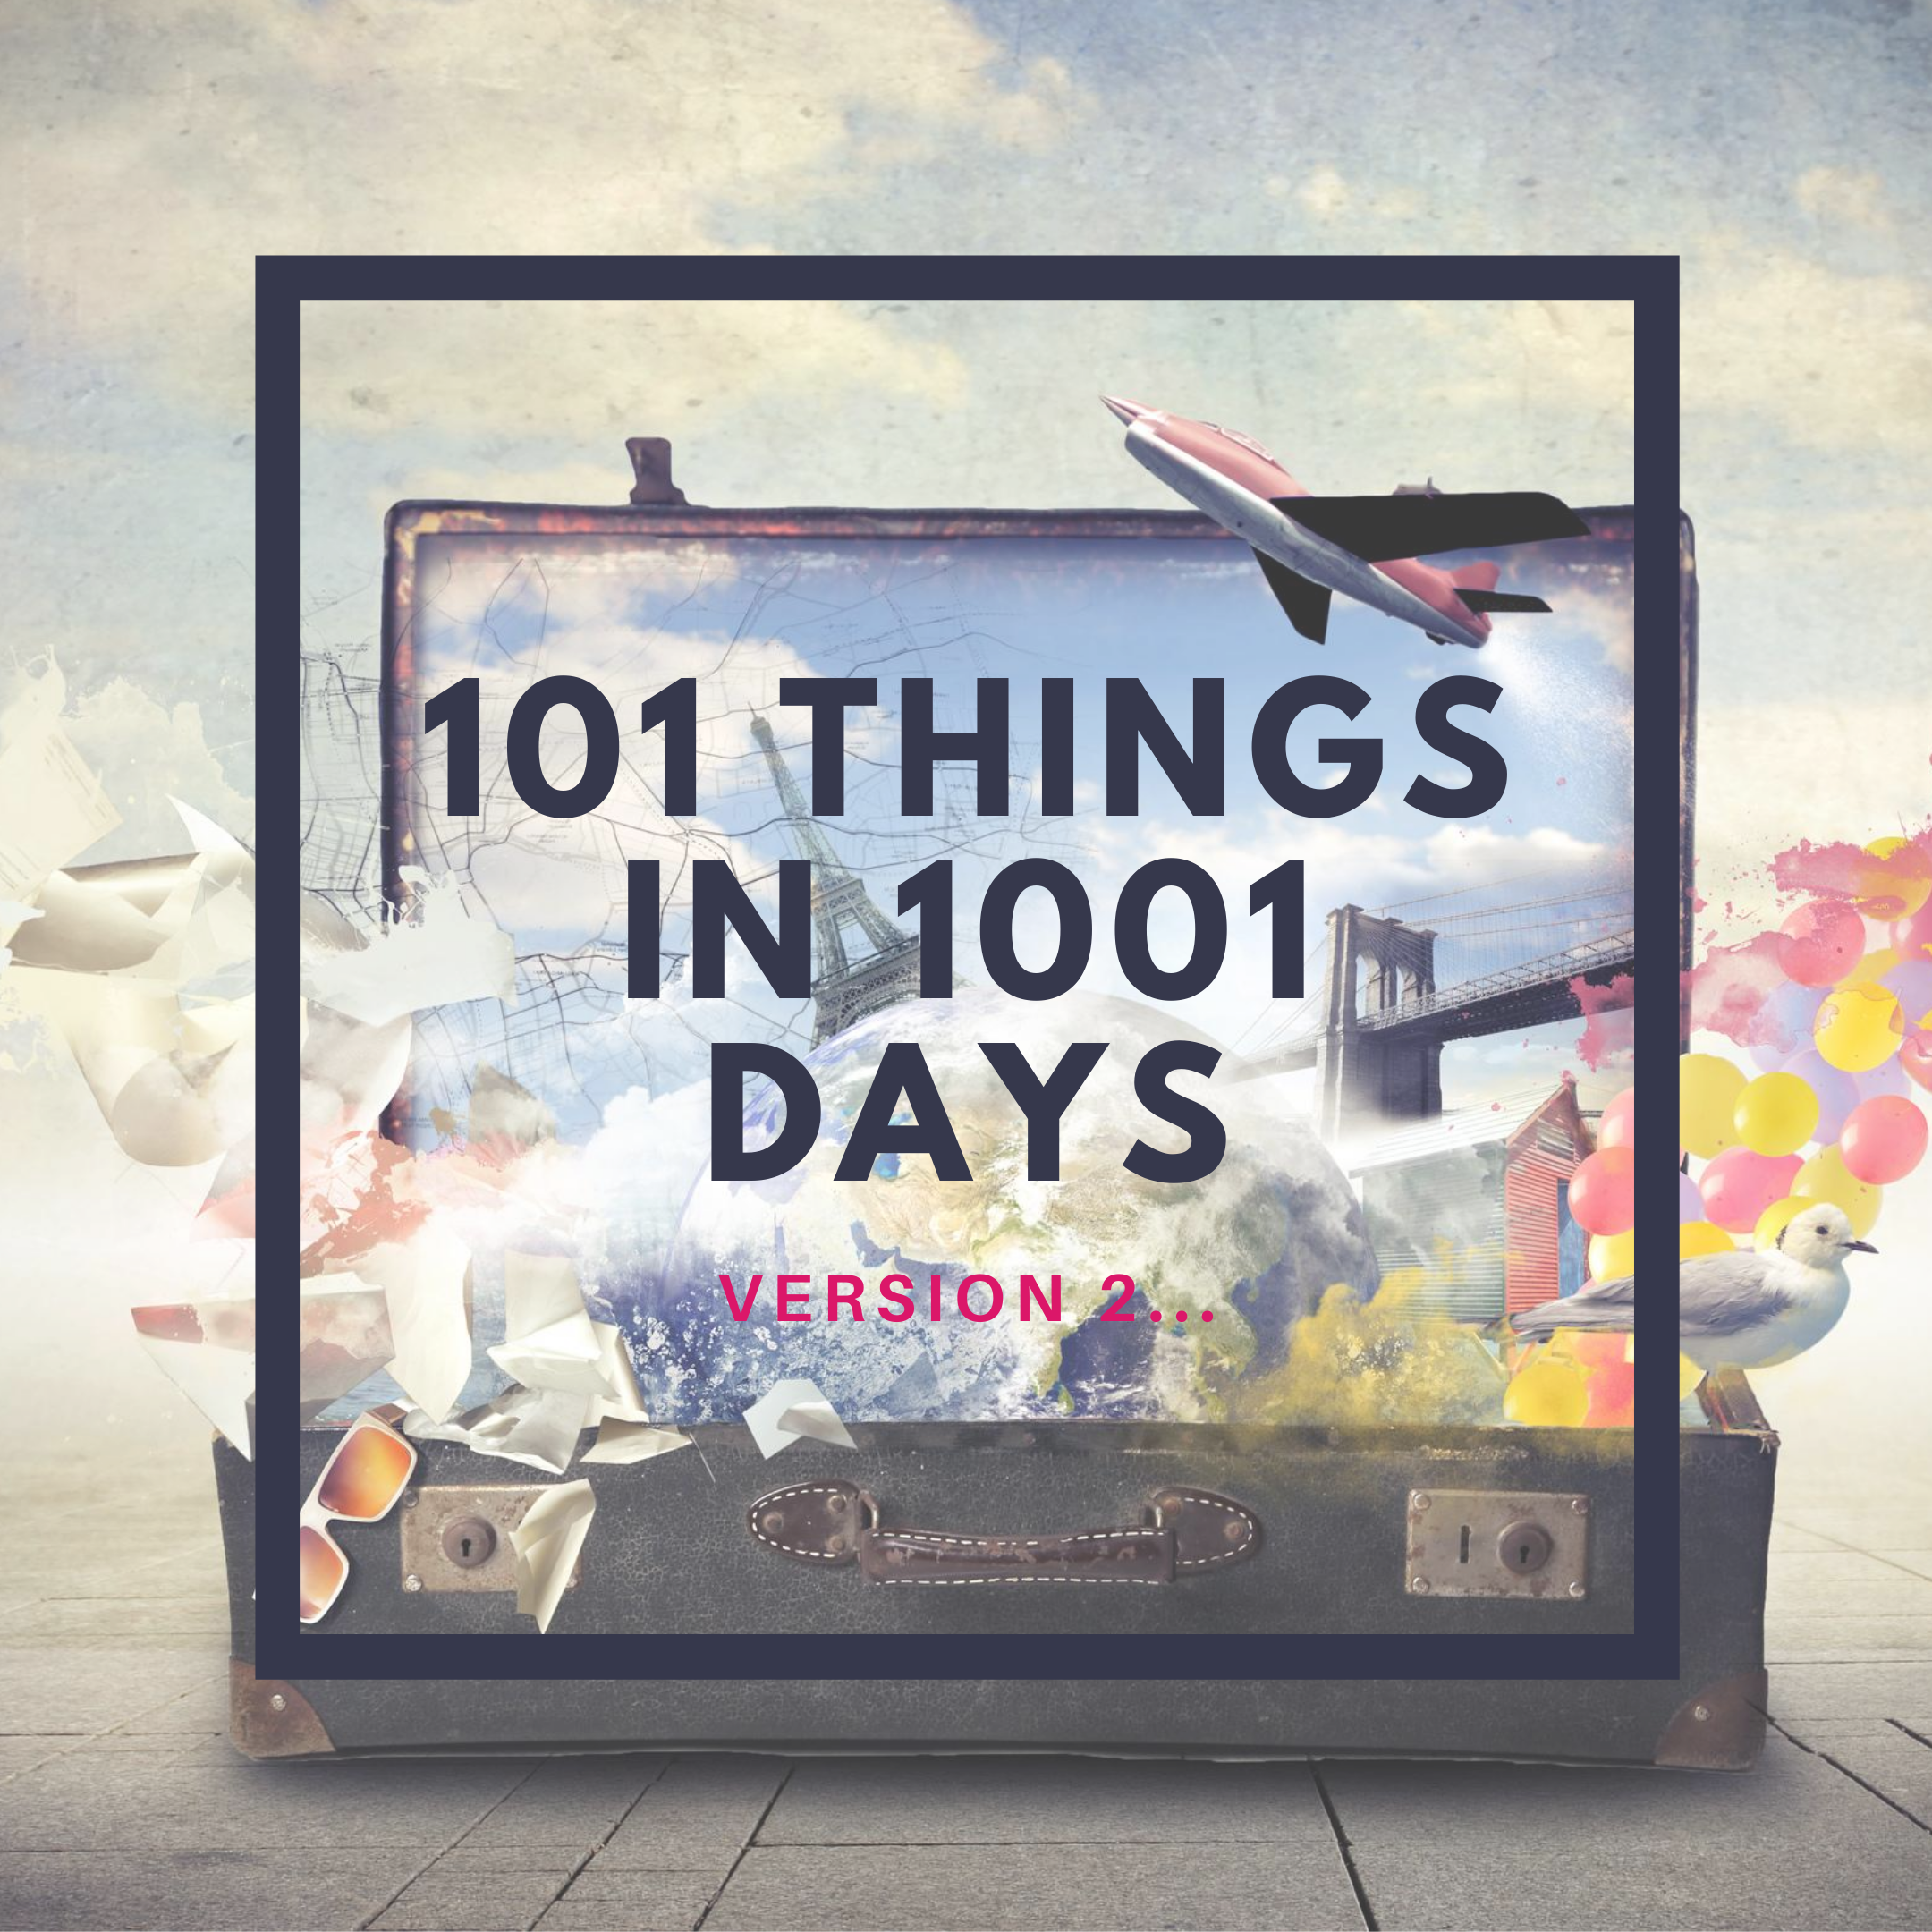 101 Things in 1001 Days V2